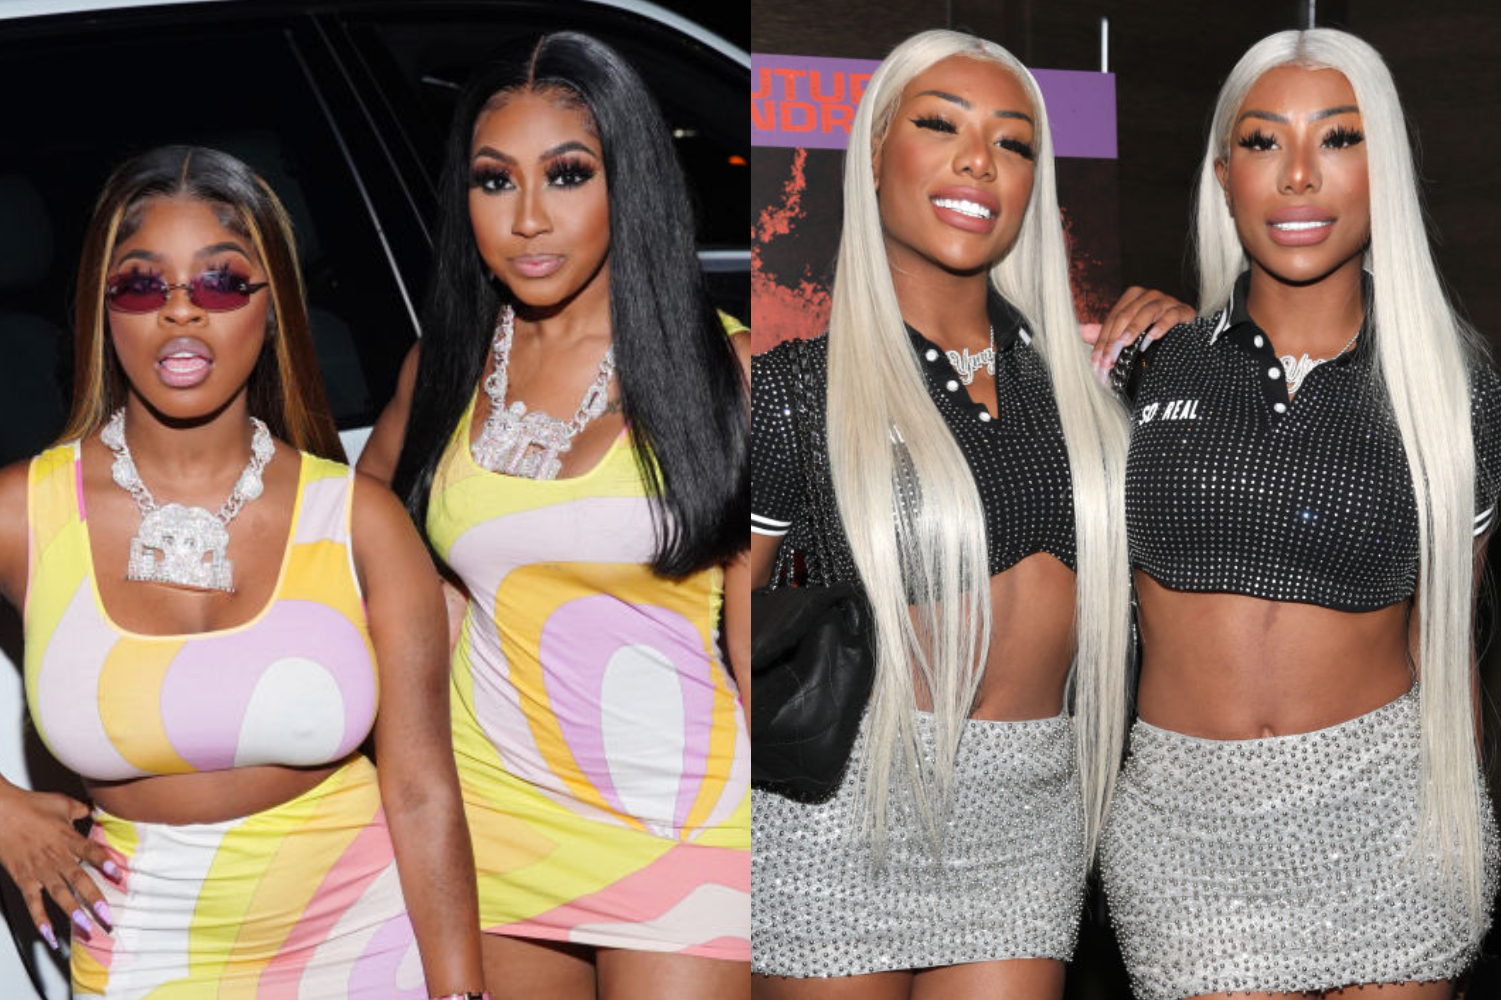 The Clermont Twins, The City Girls